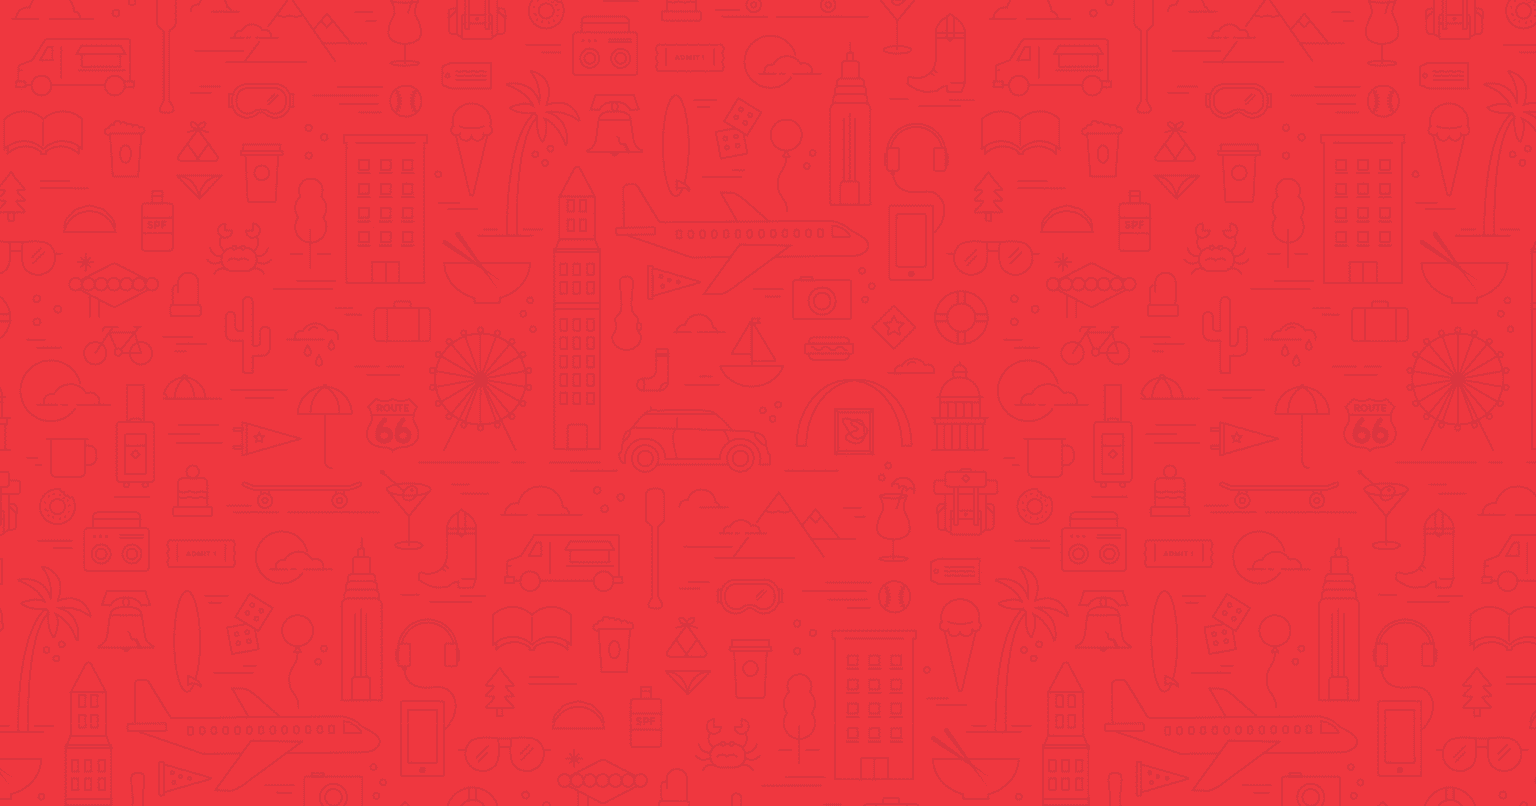 Hotwire Visual & UI Style Guide